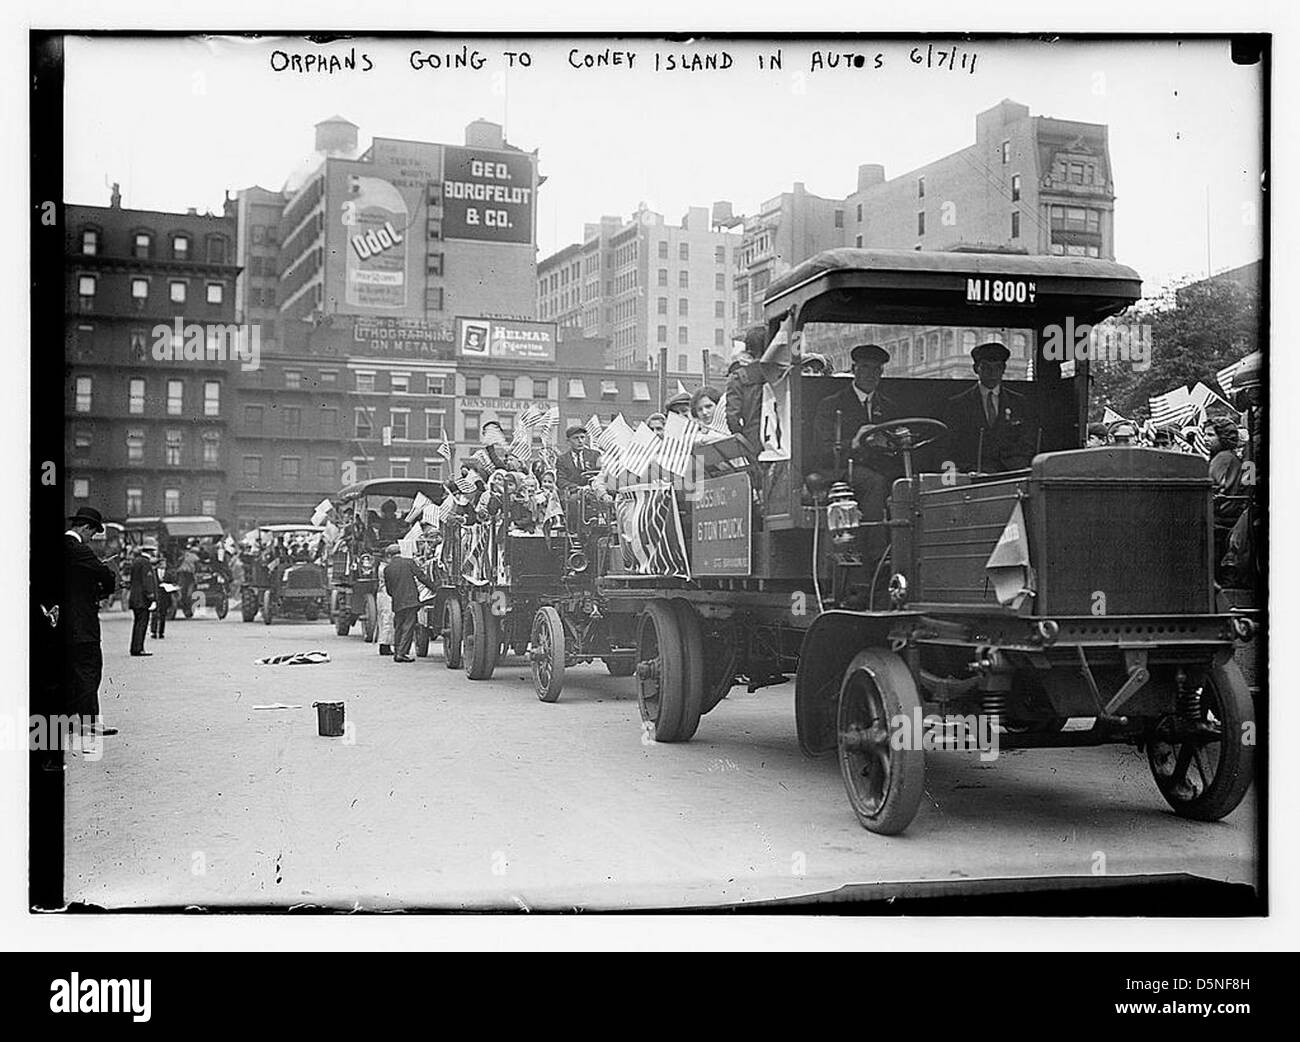 Orphans going to Coney Island in Autos, 6/7/11 (LOC) - Stock Image